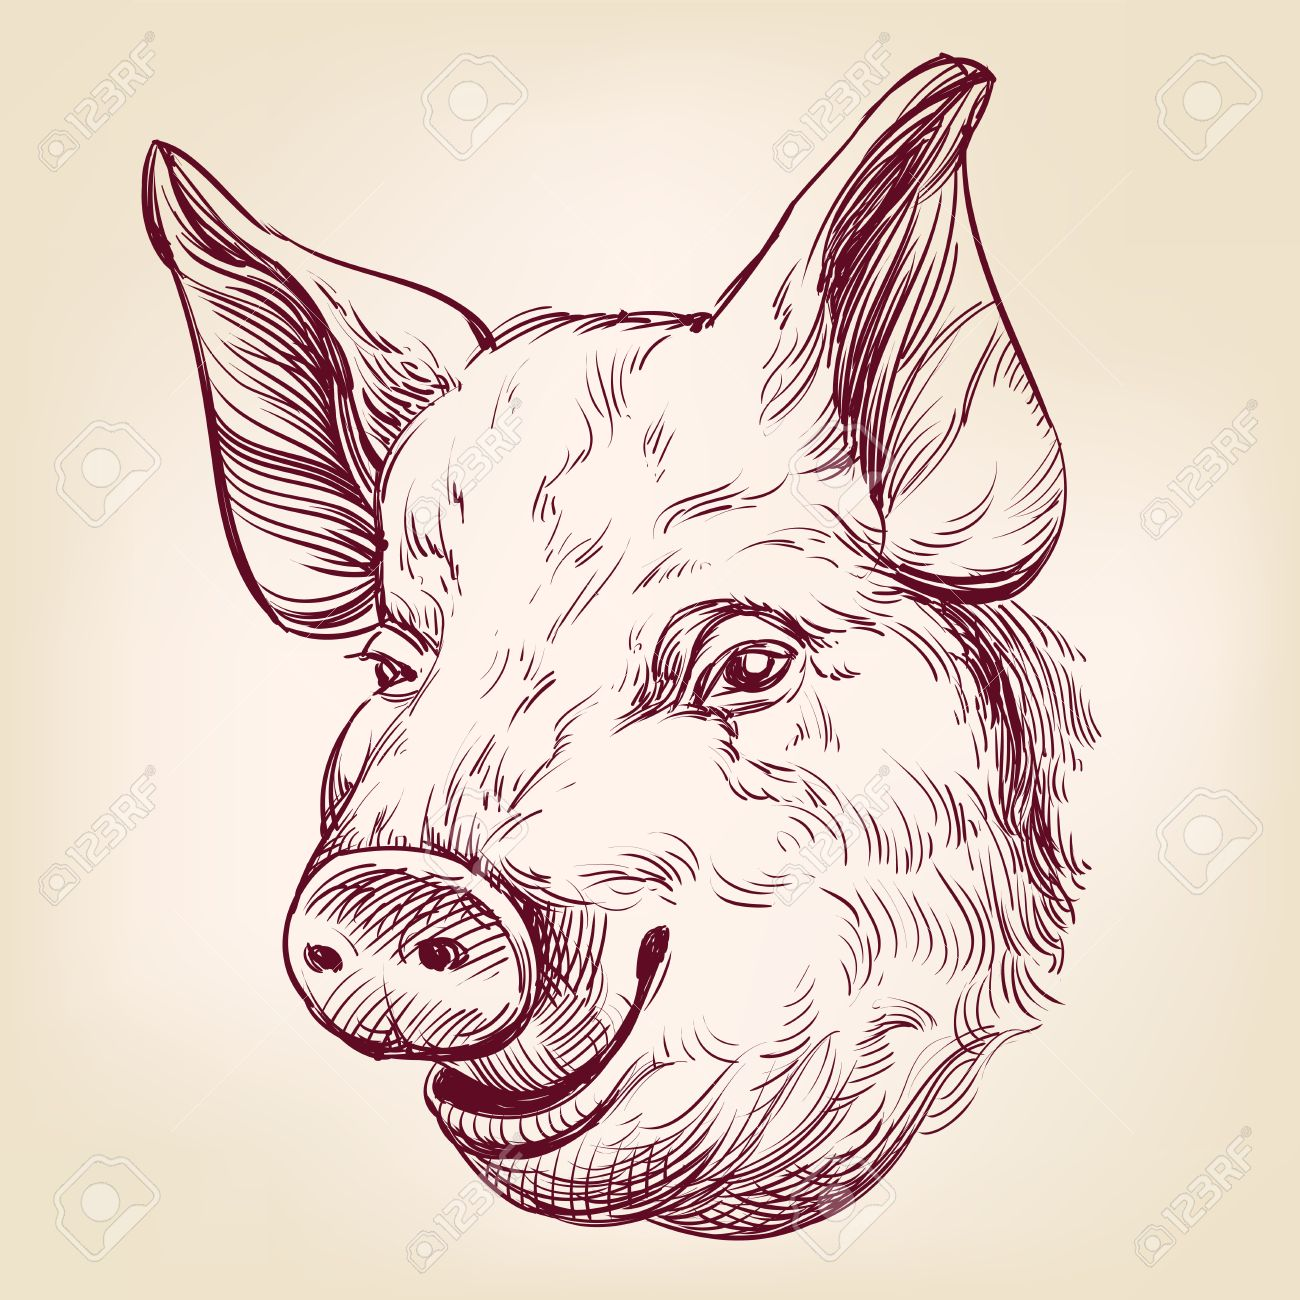 Pig clip art realistic. Head drawing at getdrawings